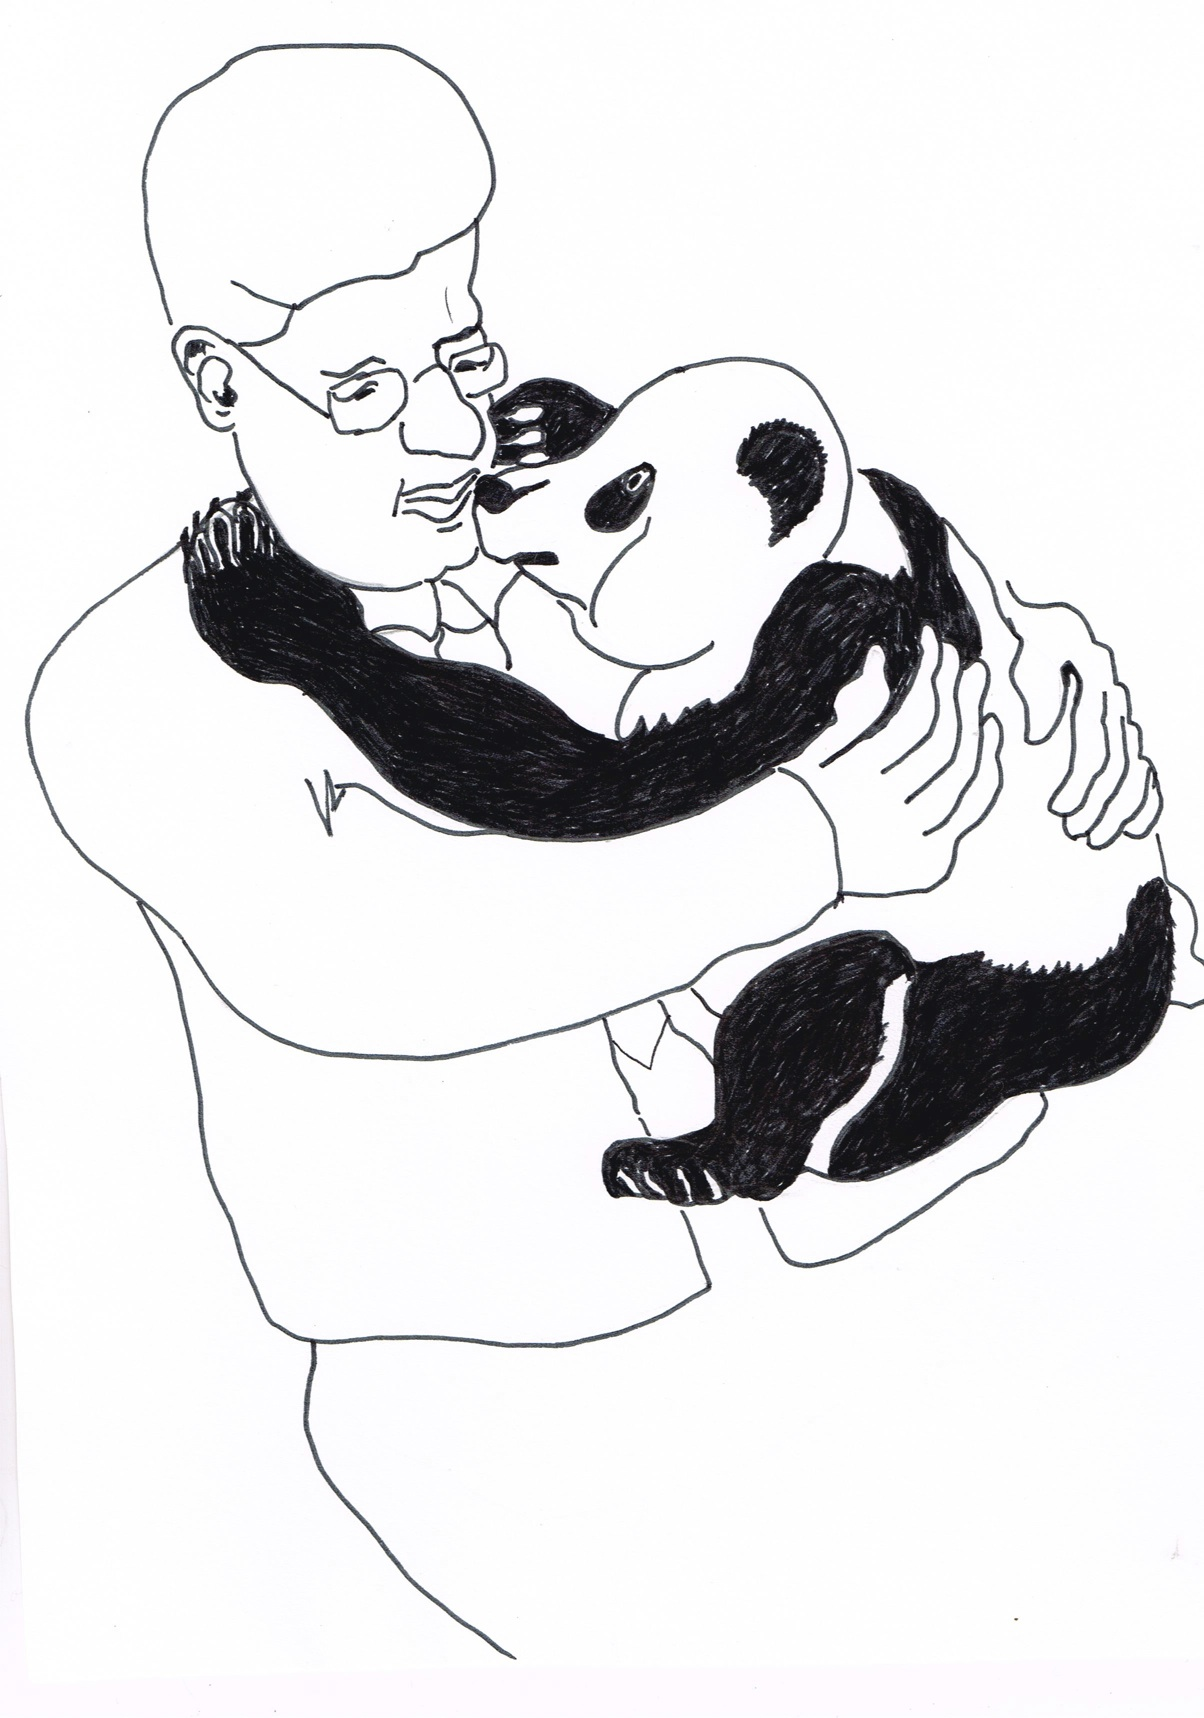 Internal memo shows that Canadian Prime Minister Stephen Harper acquiesced to China's demand that he announce in person that 2 Giant Pandas will be loaned to Canada; [which will cost Canadian zoos $10 million over the next 10 years]